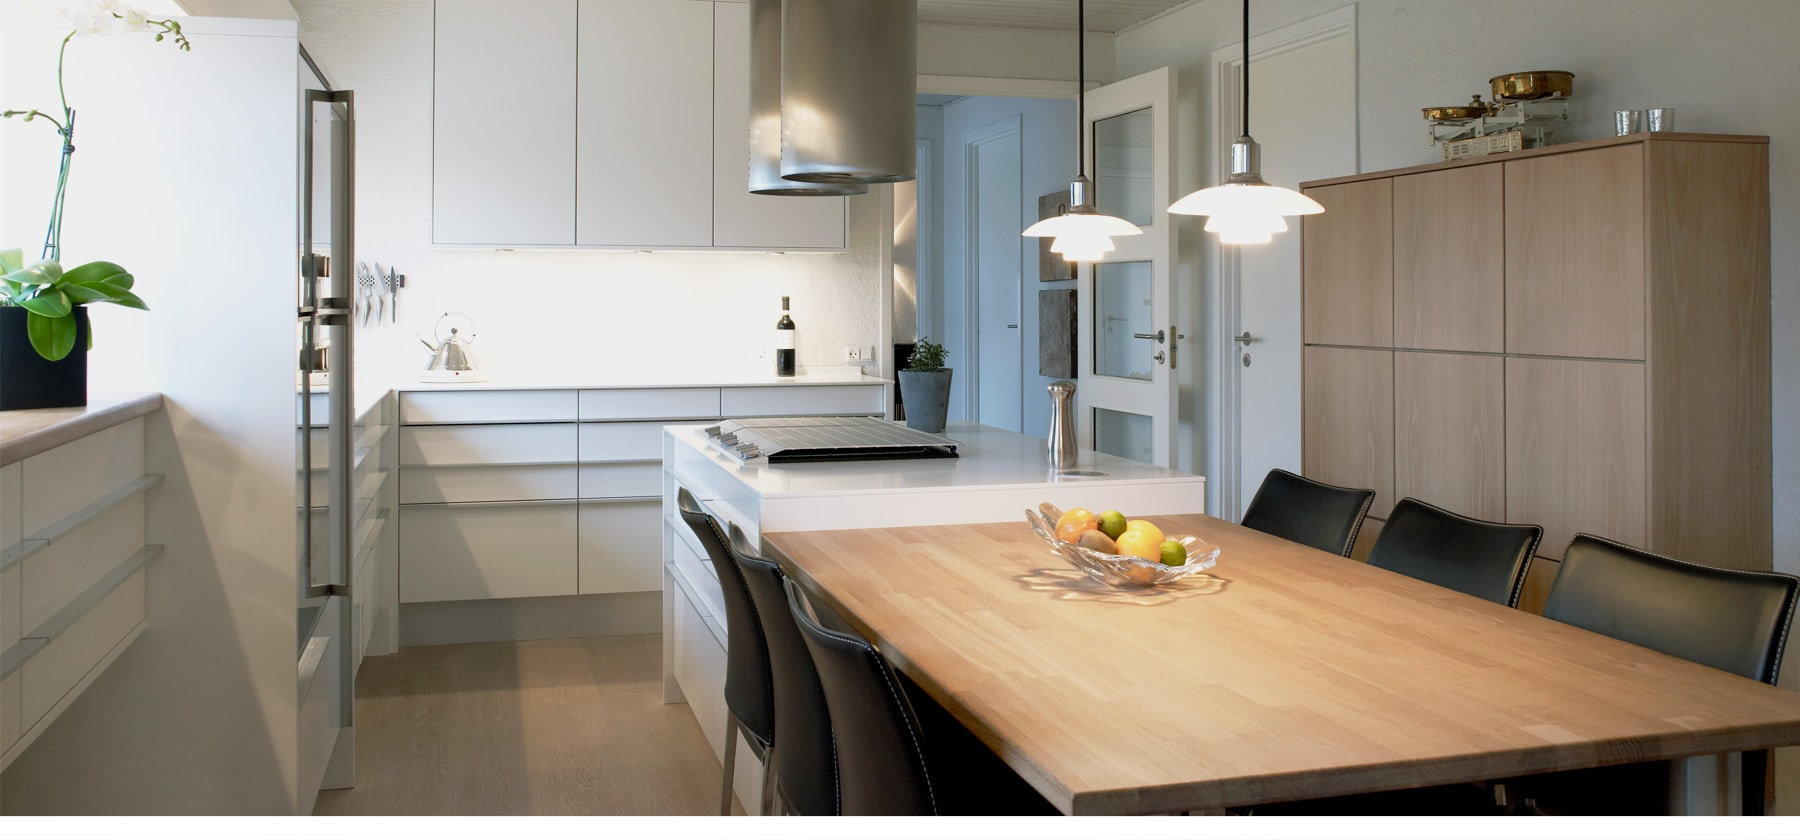 Exclusive Nordic kitchen designDAILY LUXURY <br> IN ALL ITS SIMPLICITY